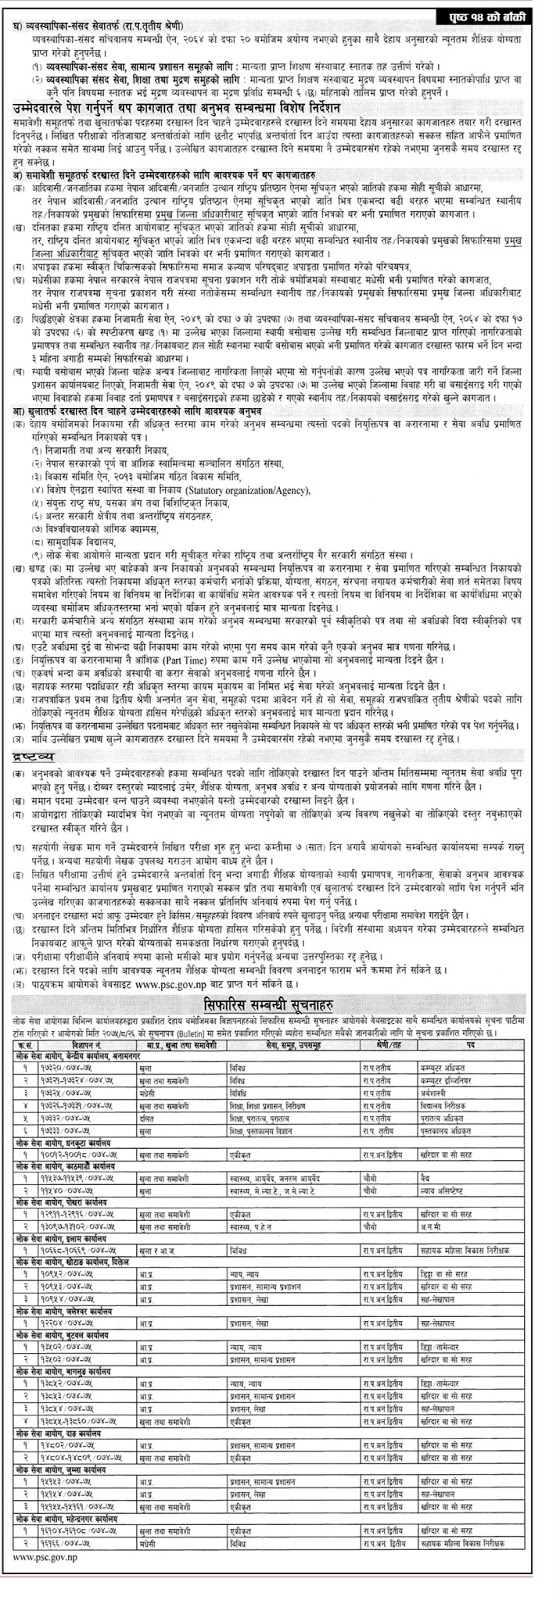 Gazetted First, Second and Third Class Level of Vacancies Announced by Lok Sewa Aayog Nepal